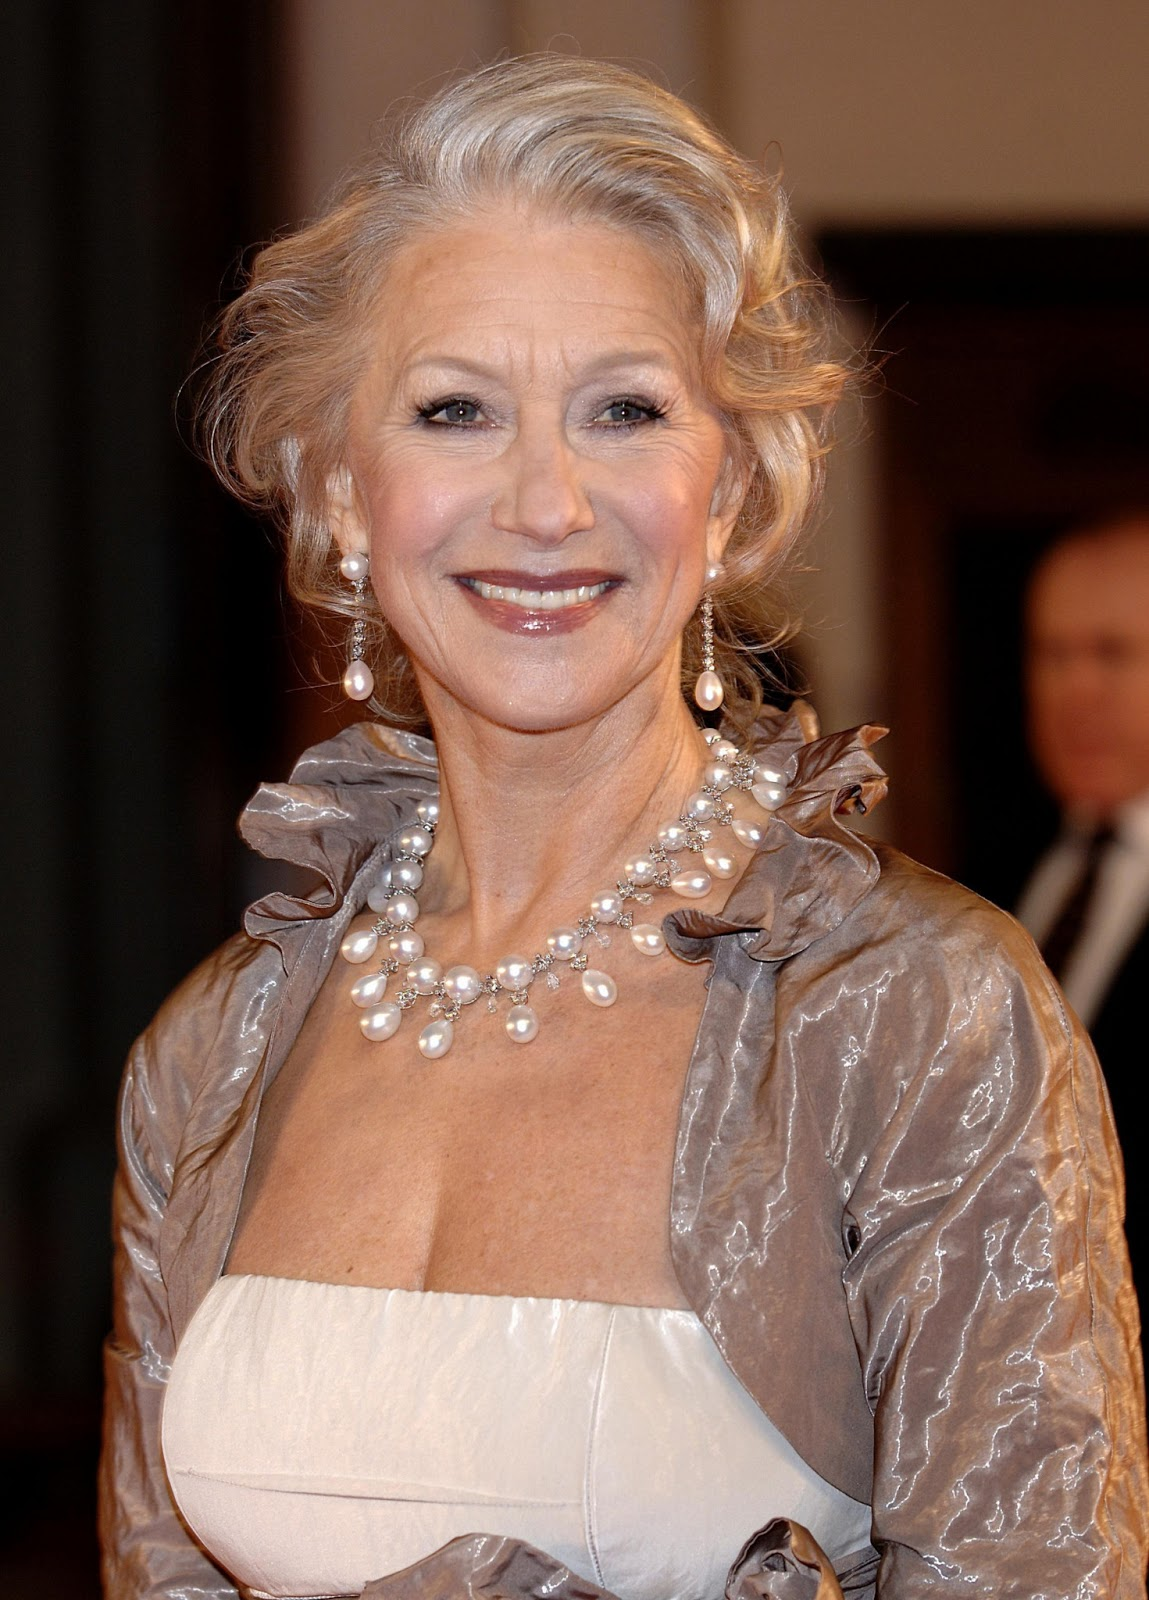 Helen Mirren Fakes intended for helen mirren - aol image search results